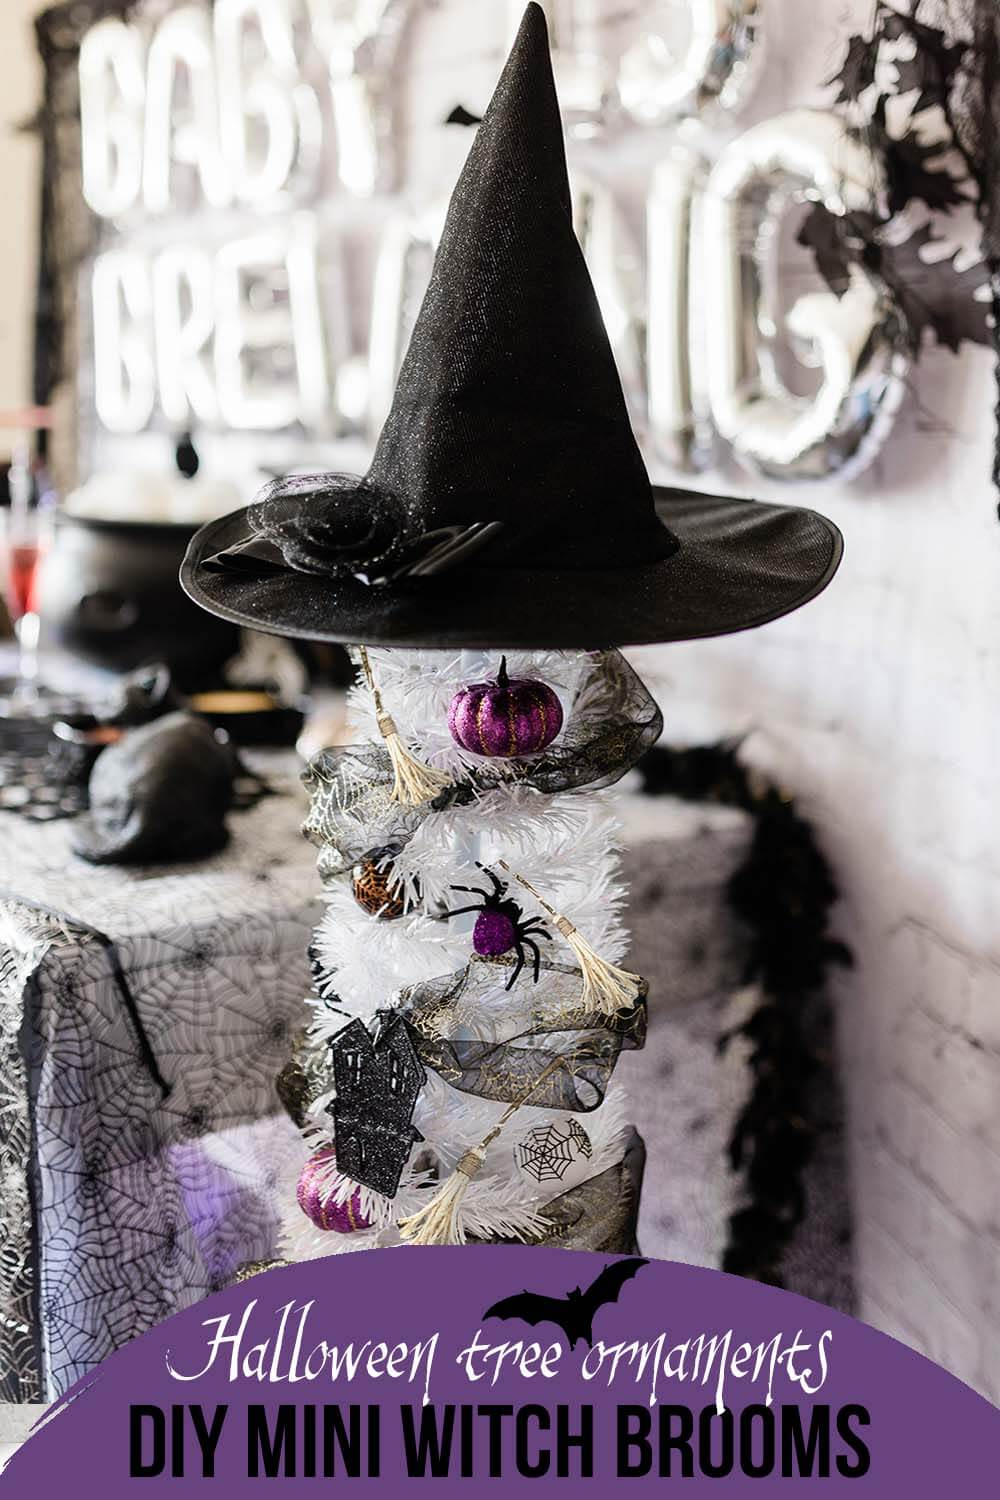 a Halloween tree with diy witch broom ornaments